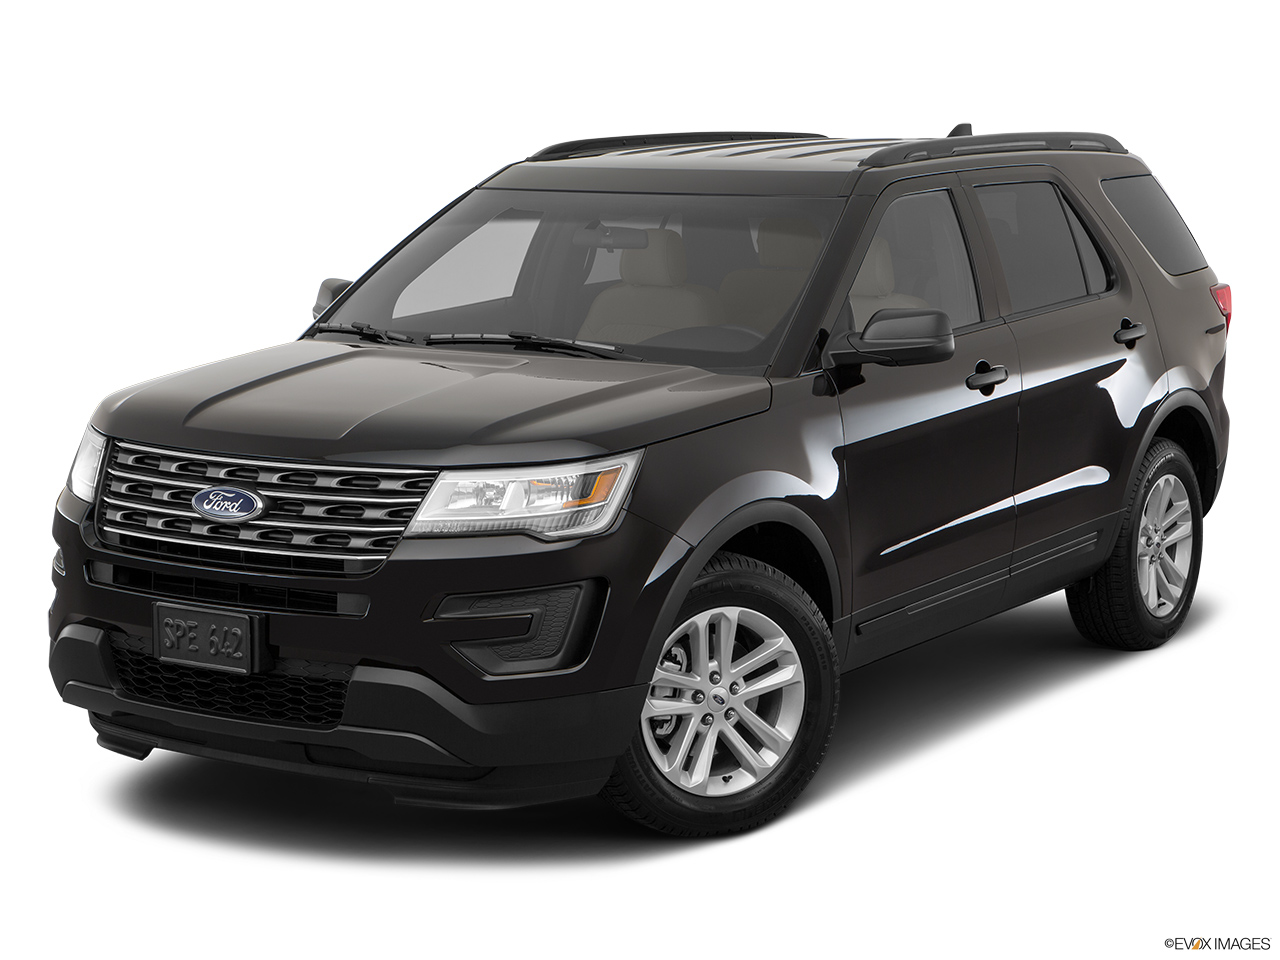 2018 Ford Explorer Spec >> 2018 Ford Explorer Prices in UAE, Gulf Specs & Reviews for Dubai, Abu Dhabi and Sharjah | YallaMotor